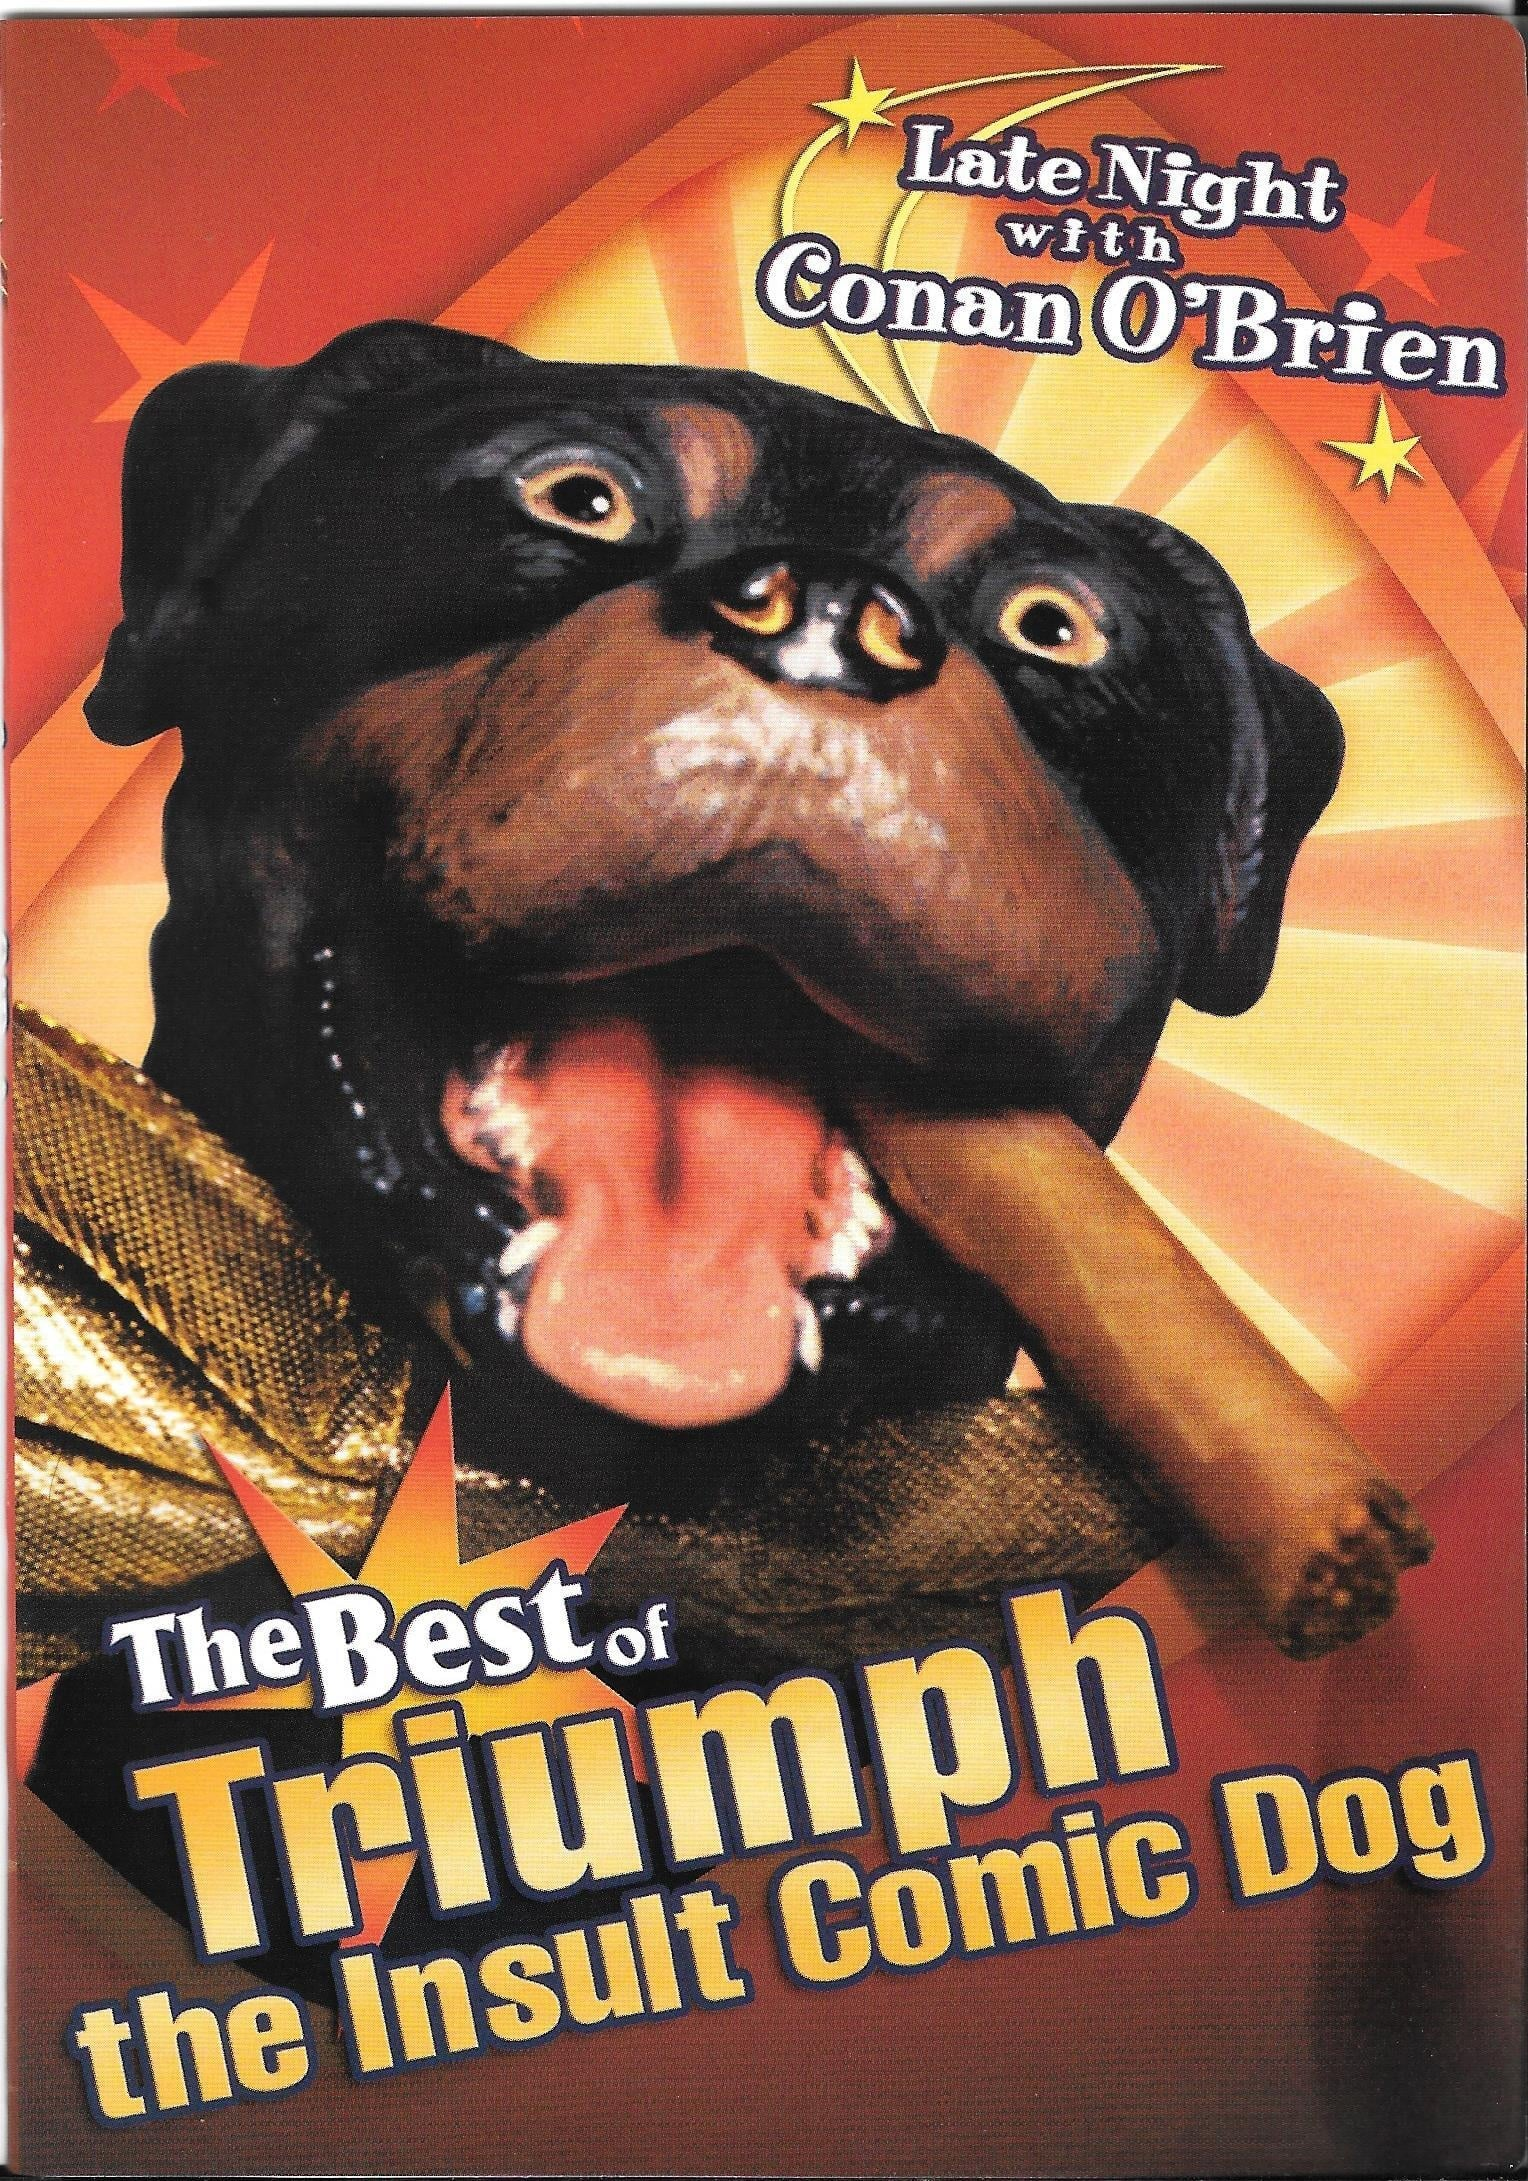 Late Night with Conan O'Brien: The Best of Triumph the Insult Comic Dog (2004)